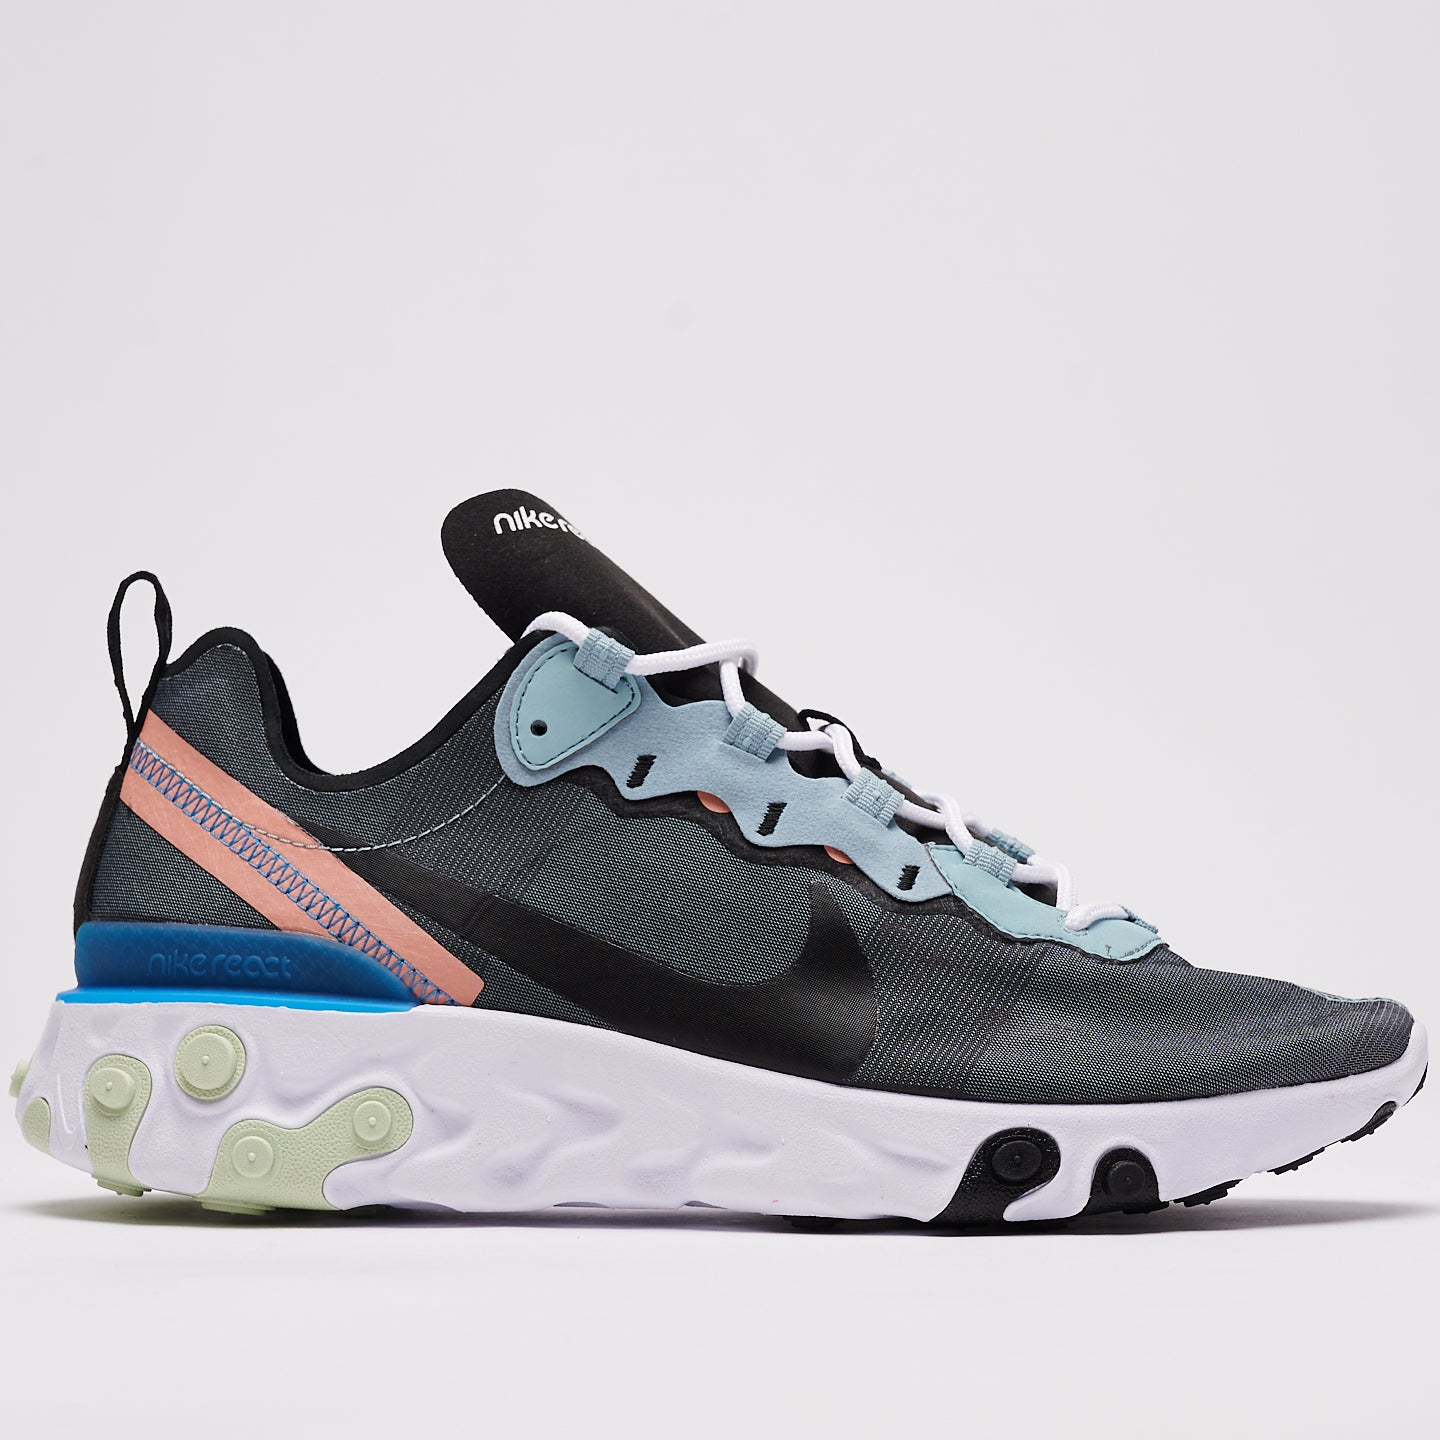 NIKE REACT ELEMENT 55 - OCEAN CUBE/BLACK-PINK QUARTZ